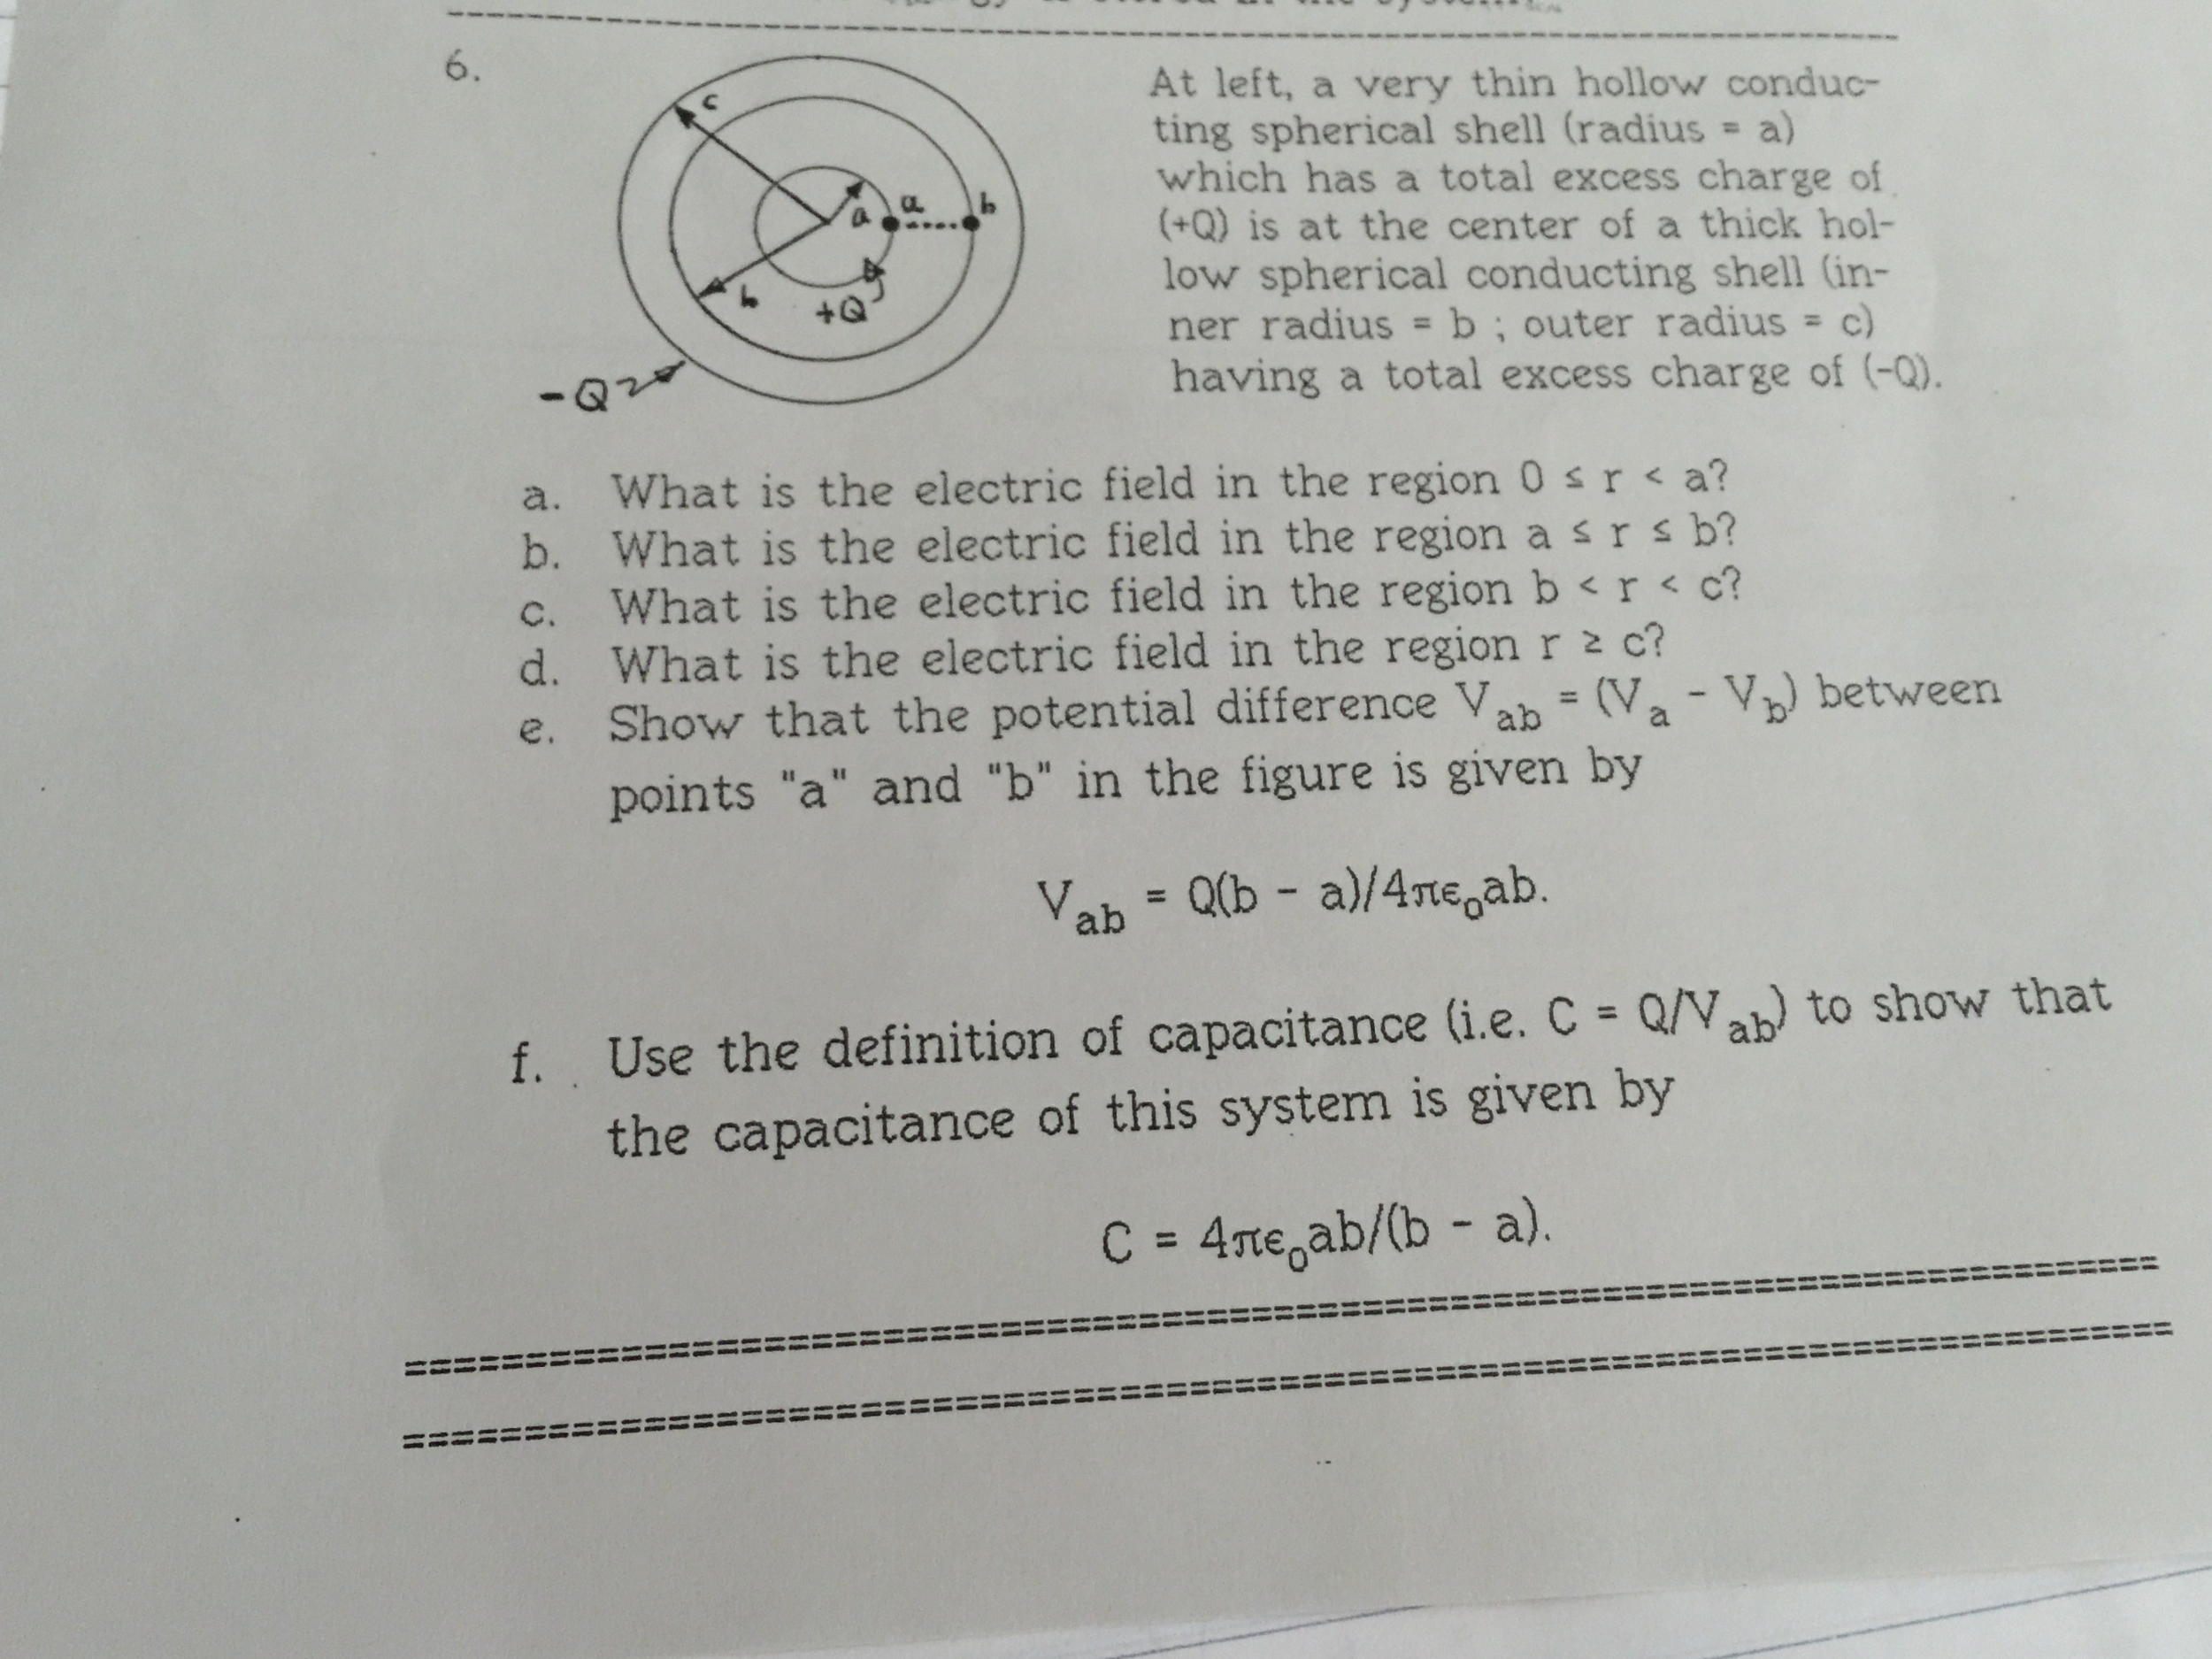 i need help with physics